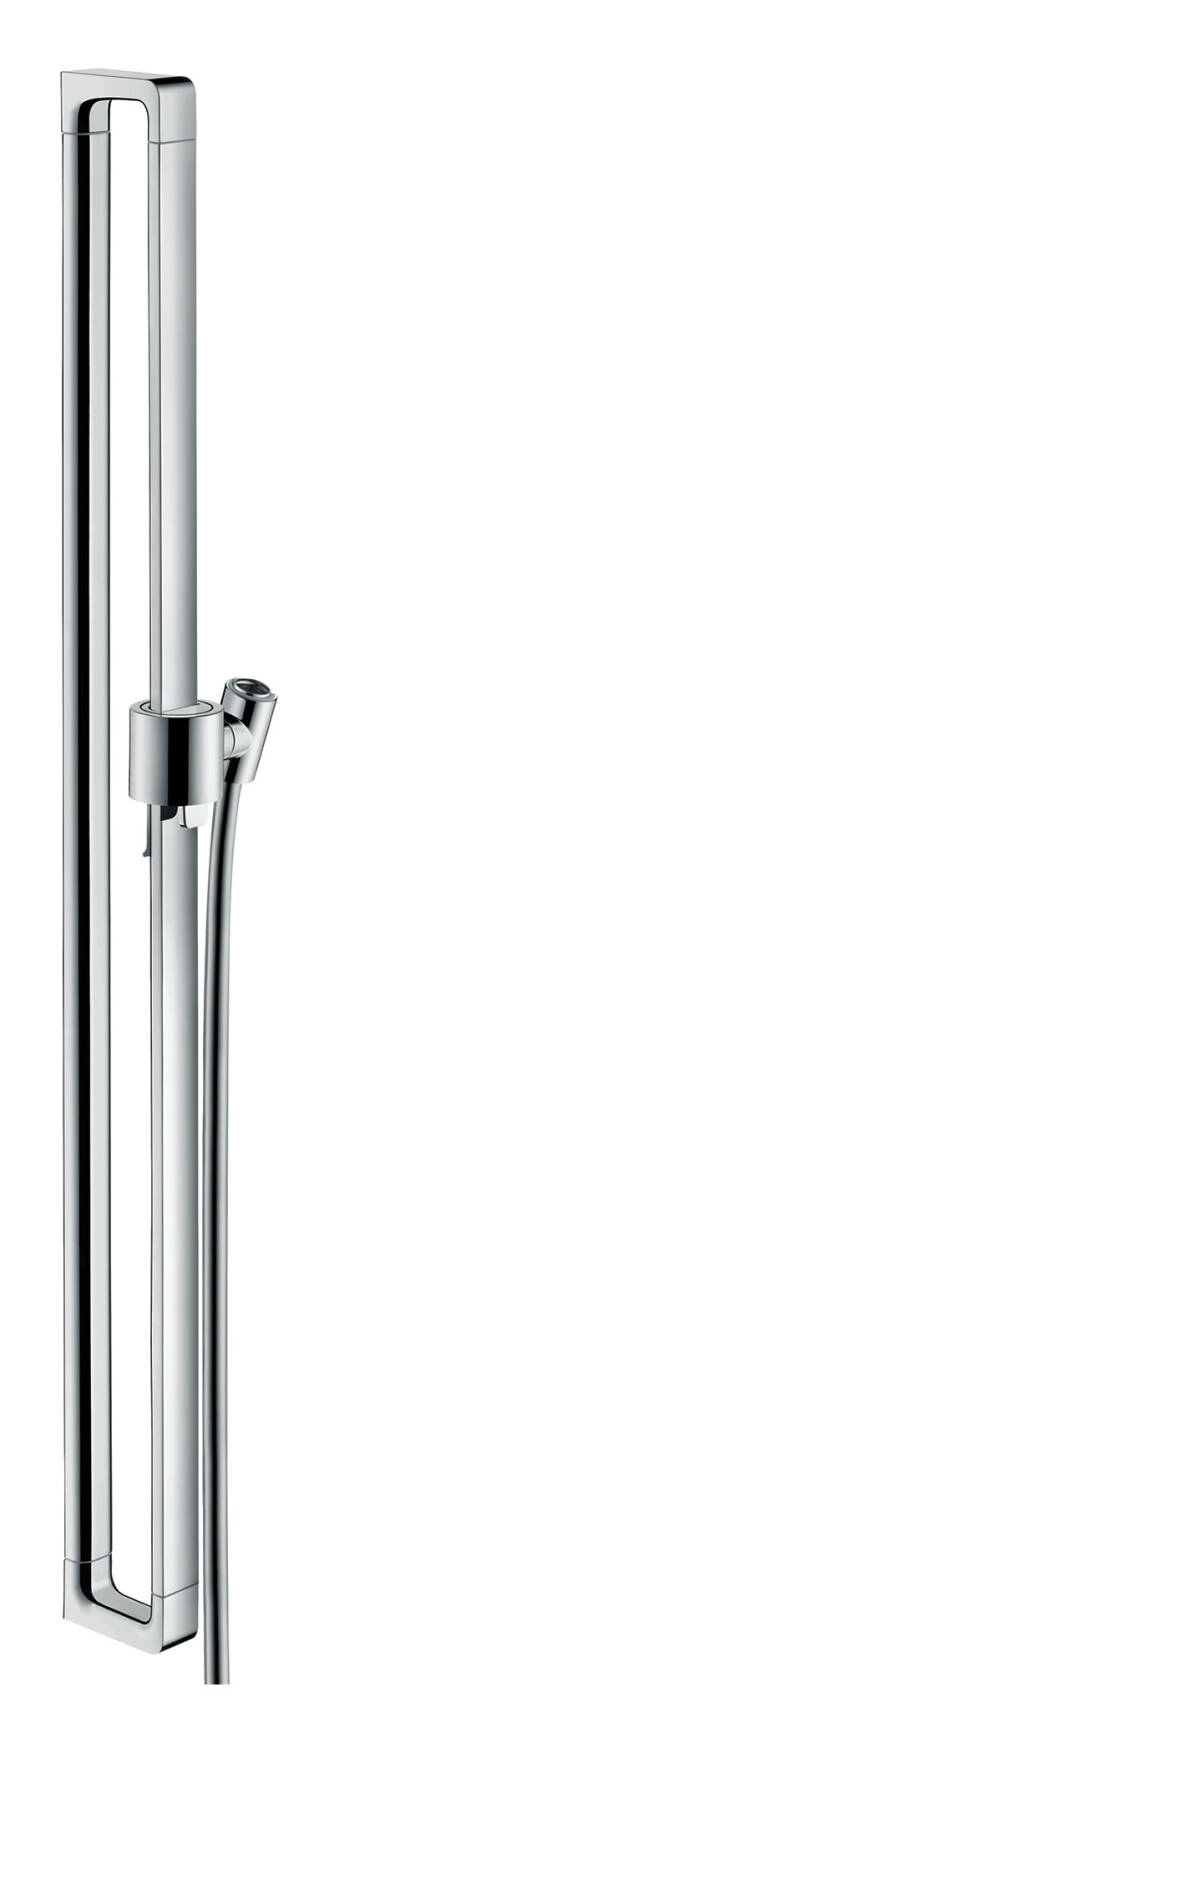 Shower bar 0.90 m, Polished Nickel, 36736830